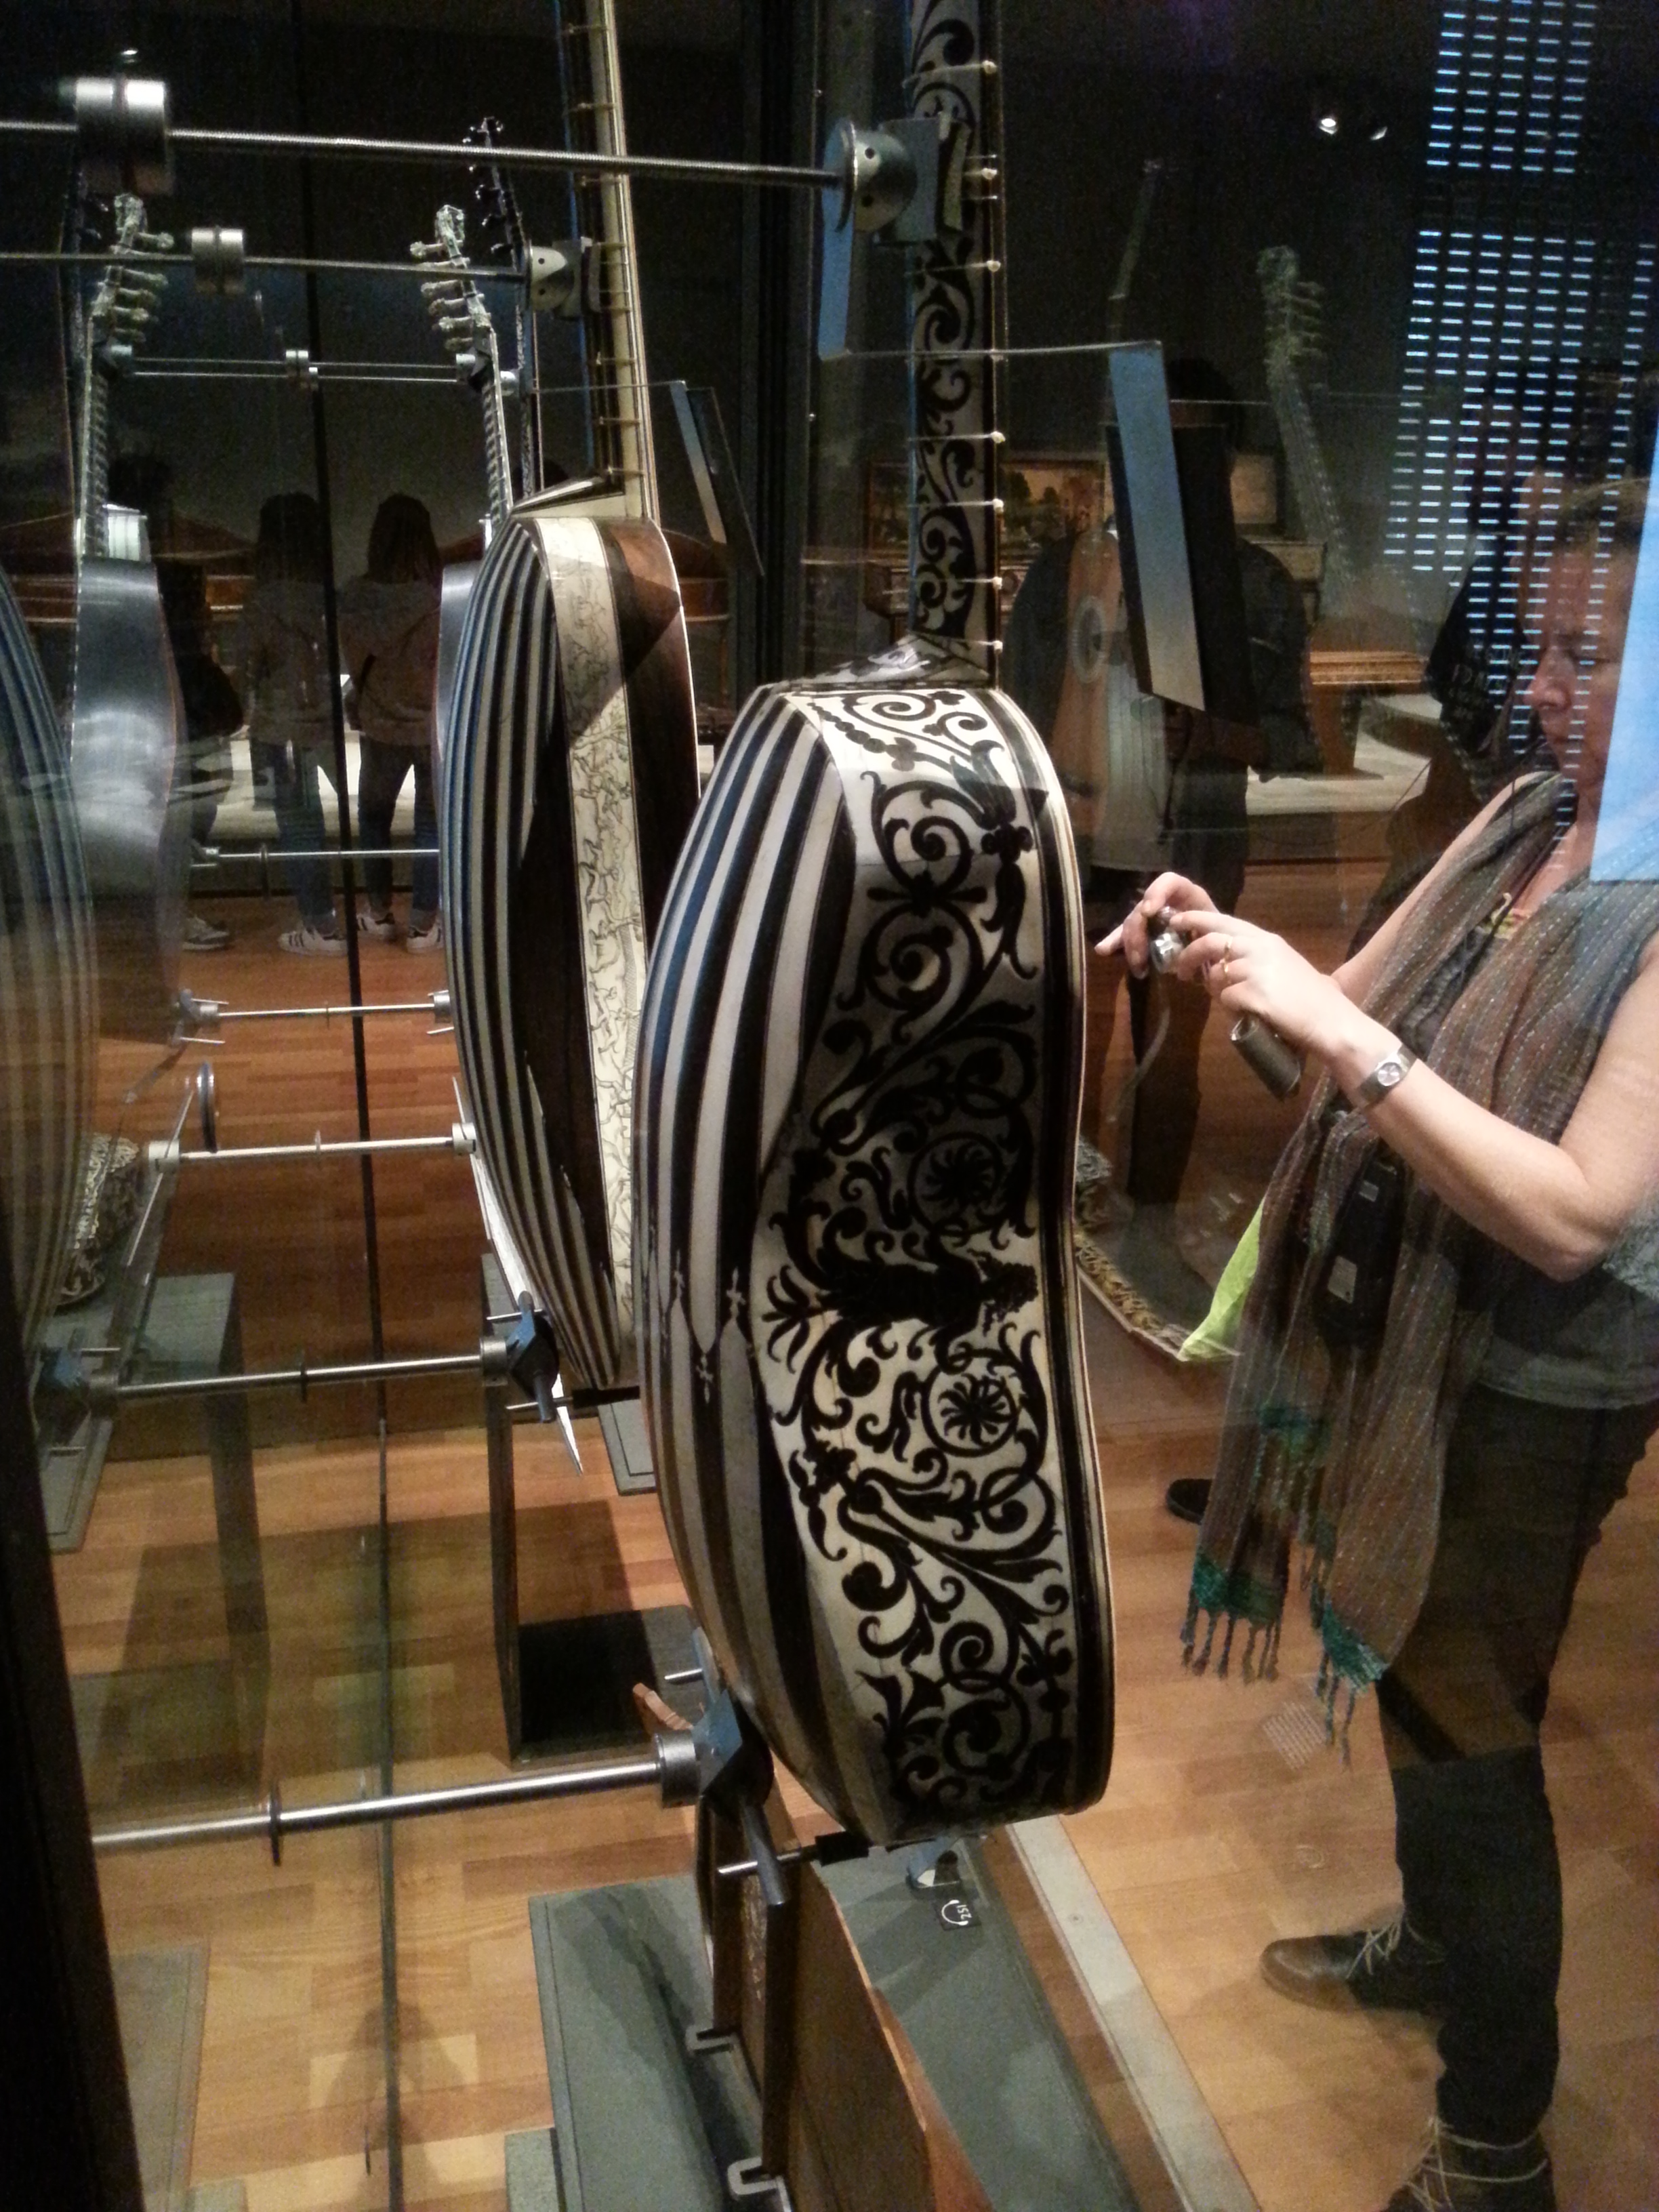 A very impressive Baroque guitar. That's some inlay work!